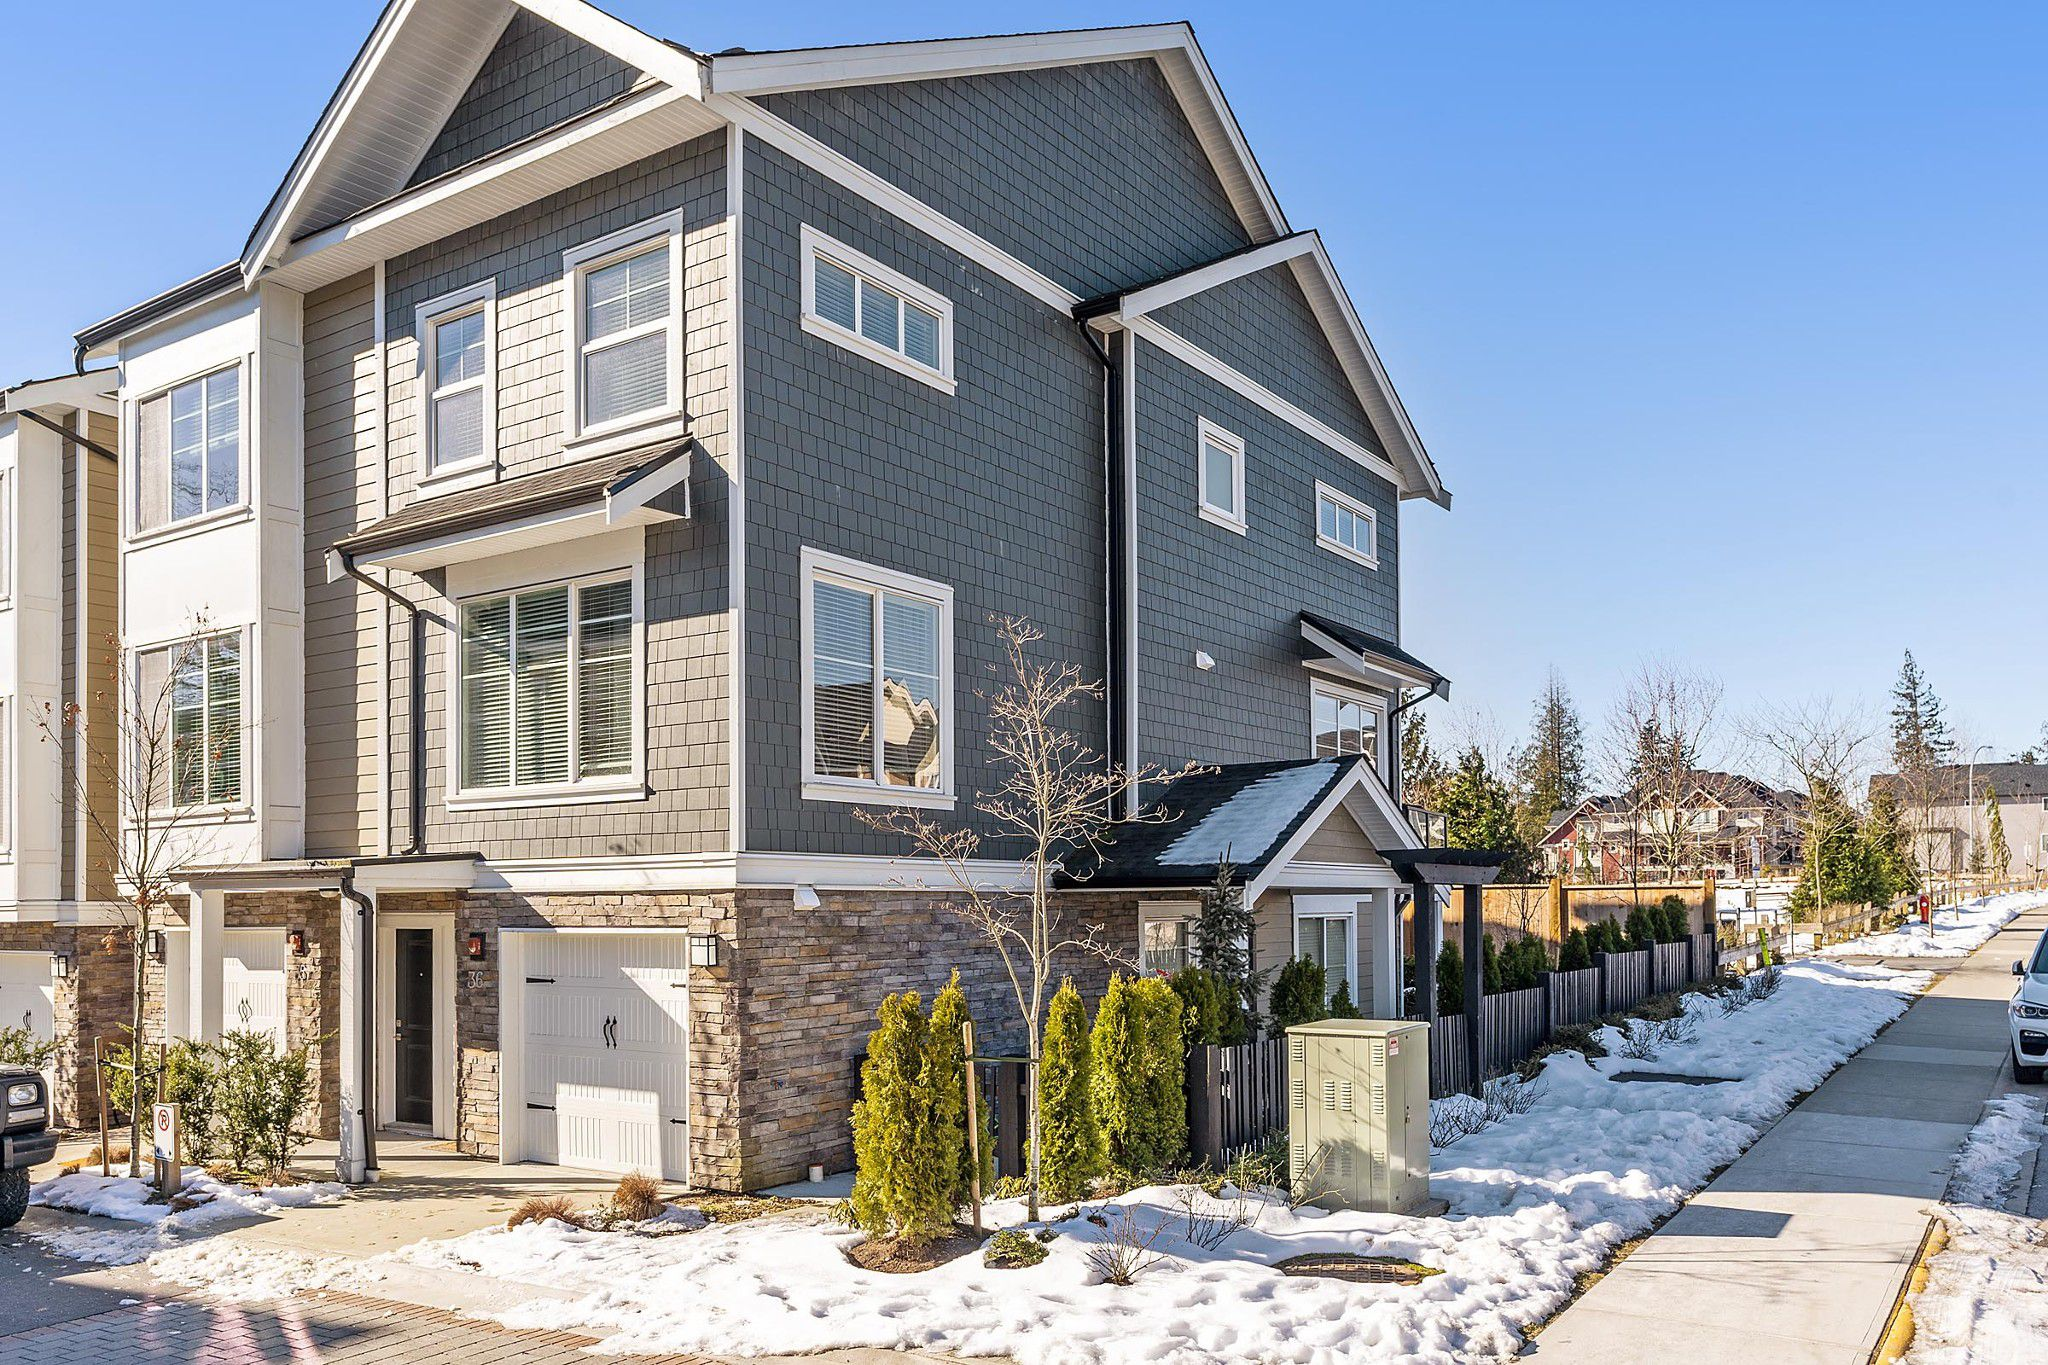 """Main Photo: 36 21150 76A Avenue in Langley: Willoughby Heights Townhouse for sale in """"HUTTON"""" : MLS®# R2343680"""